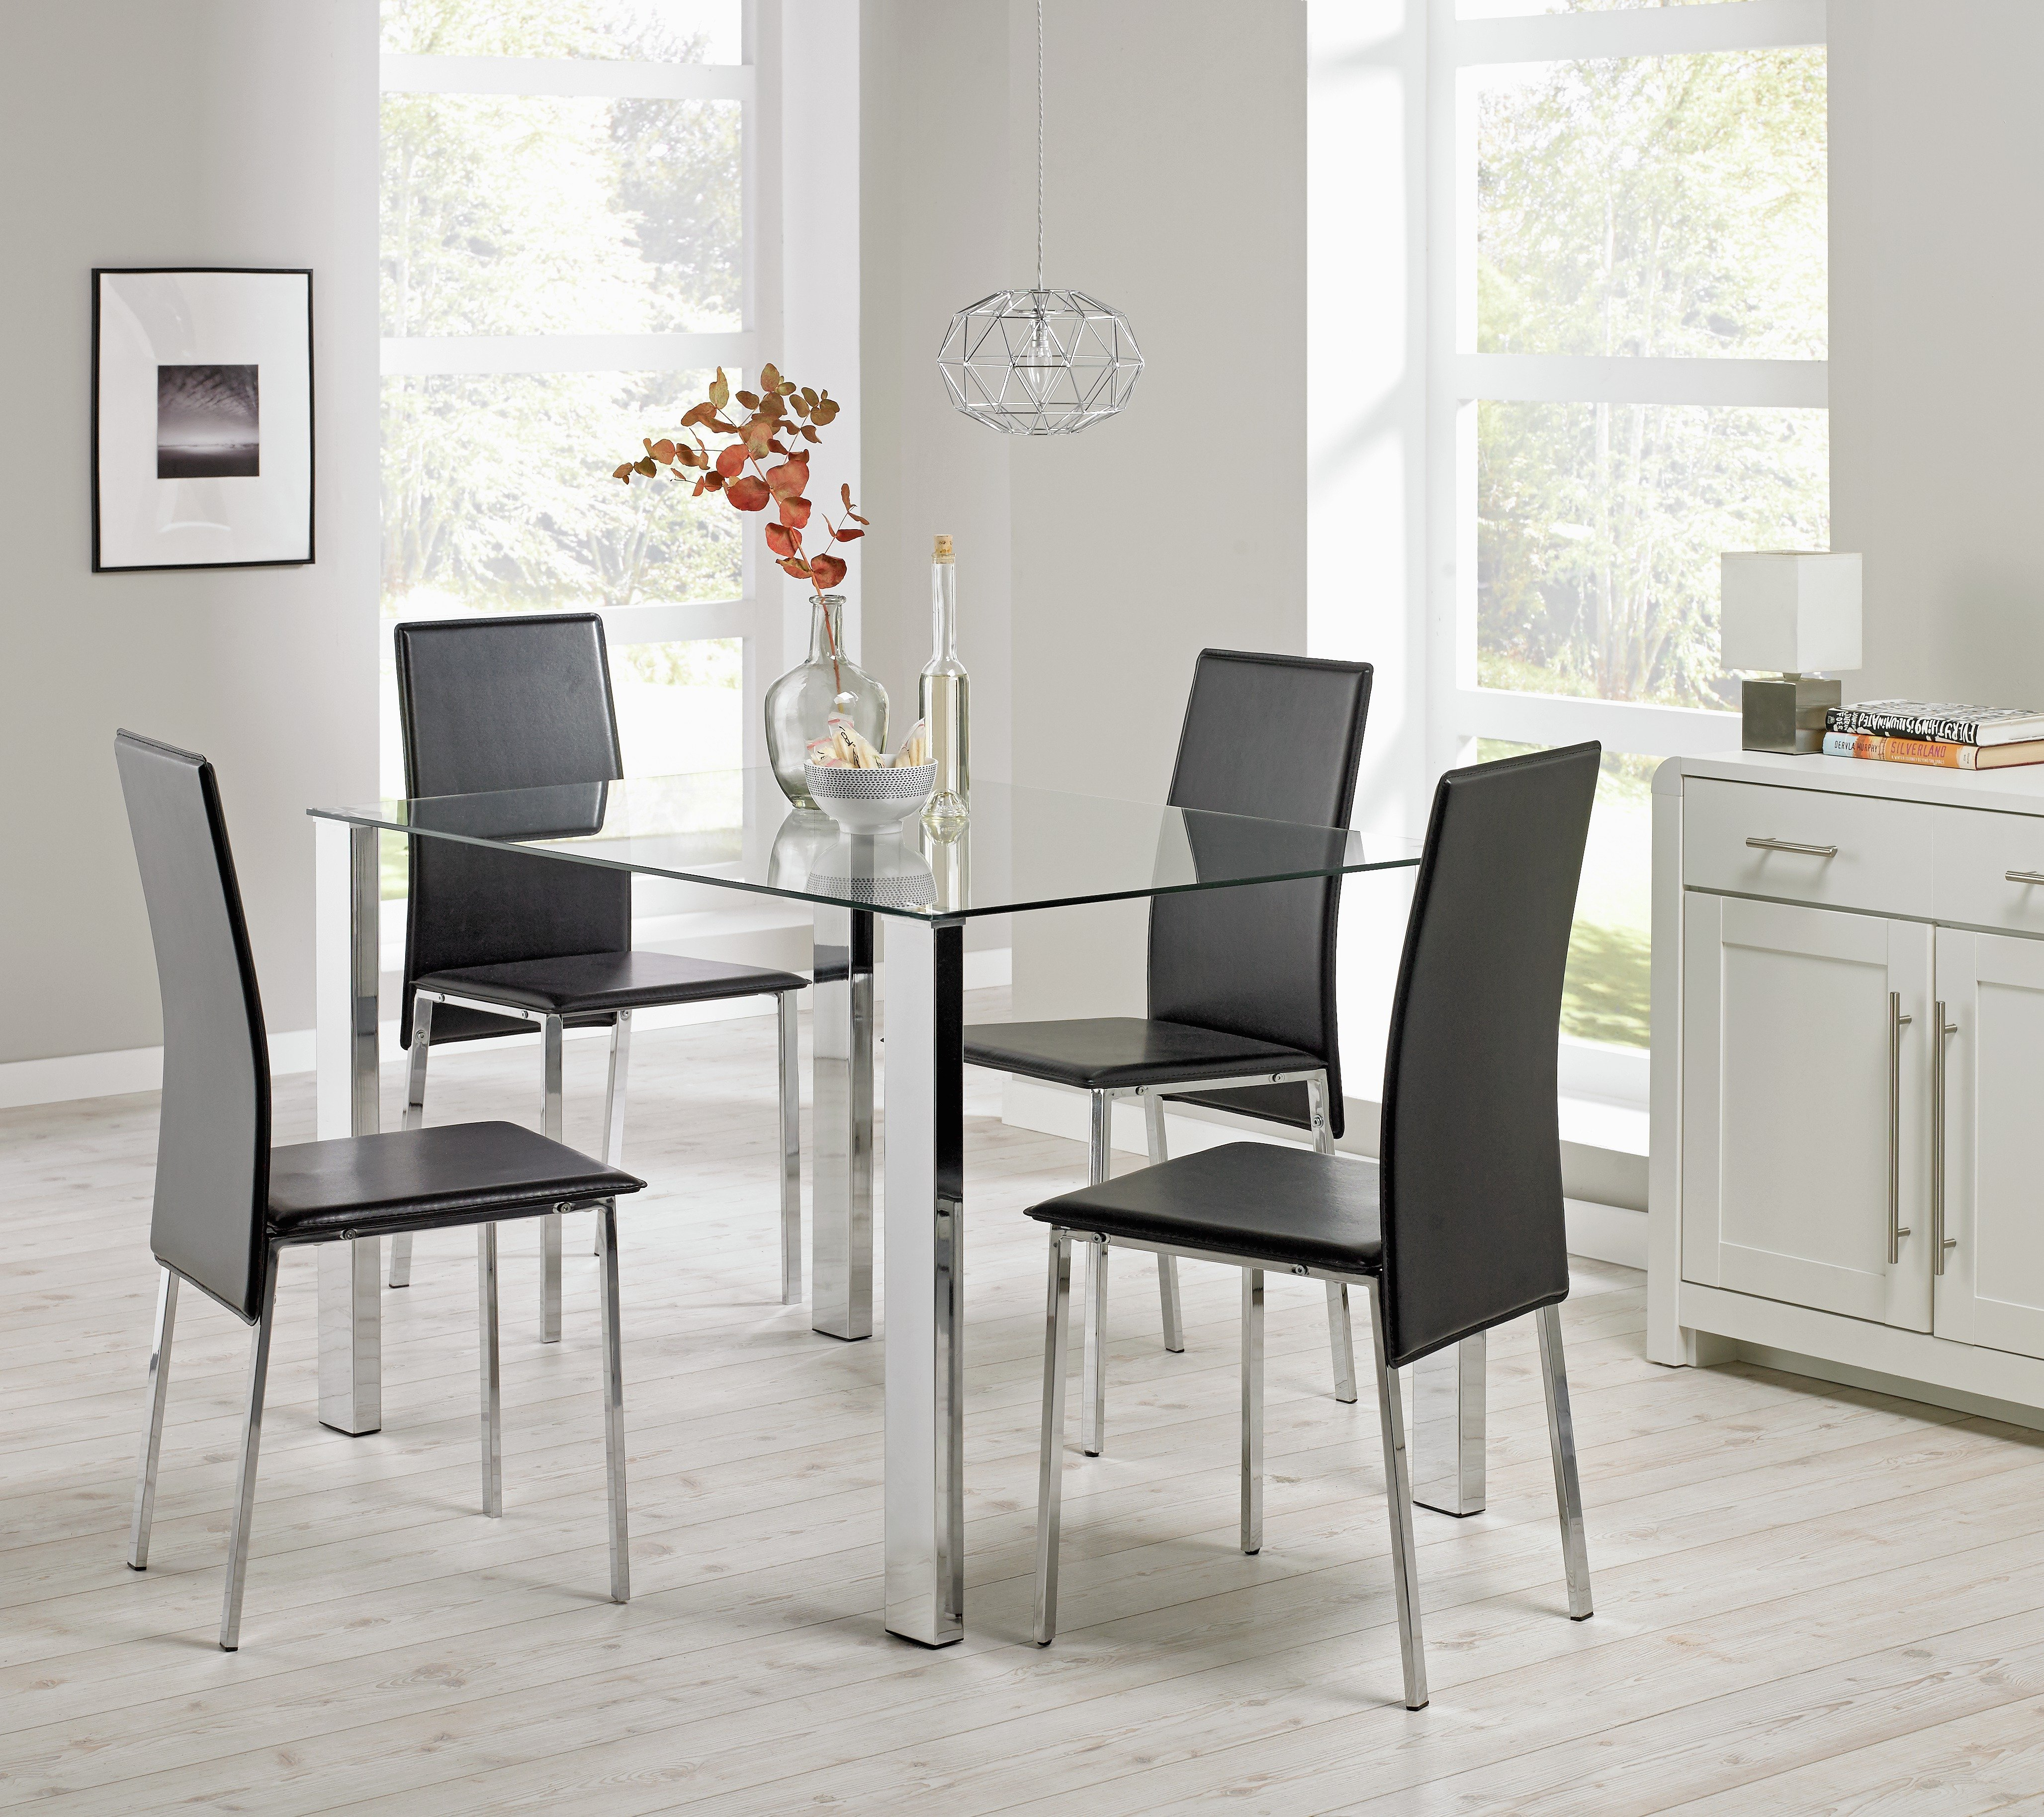 Buy Hygena Fitz Clear Glass Dining Table 4 Chairs Black at